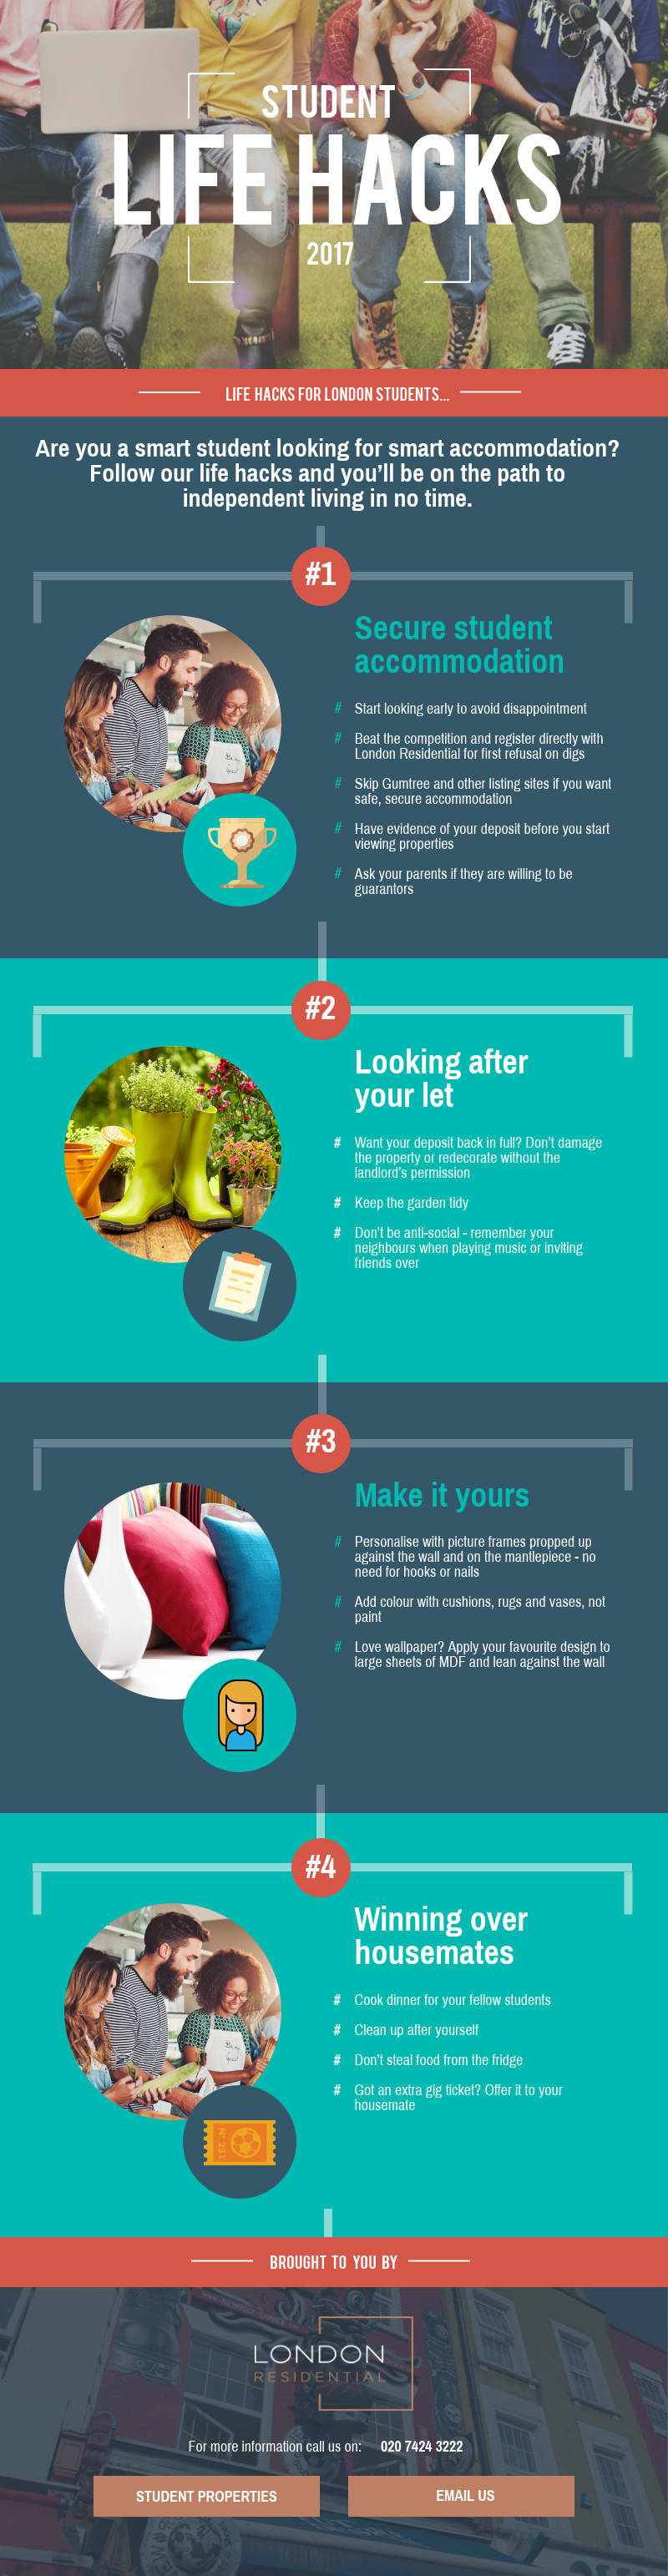 Moving to London: Smart Tips for Smart Students - Infographic